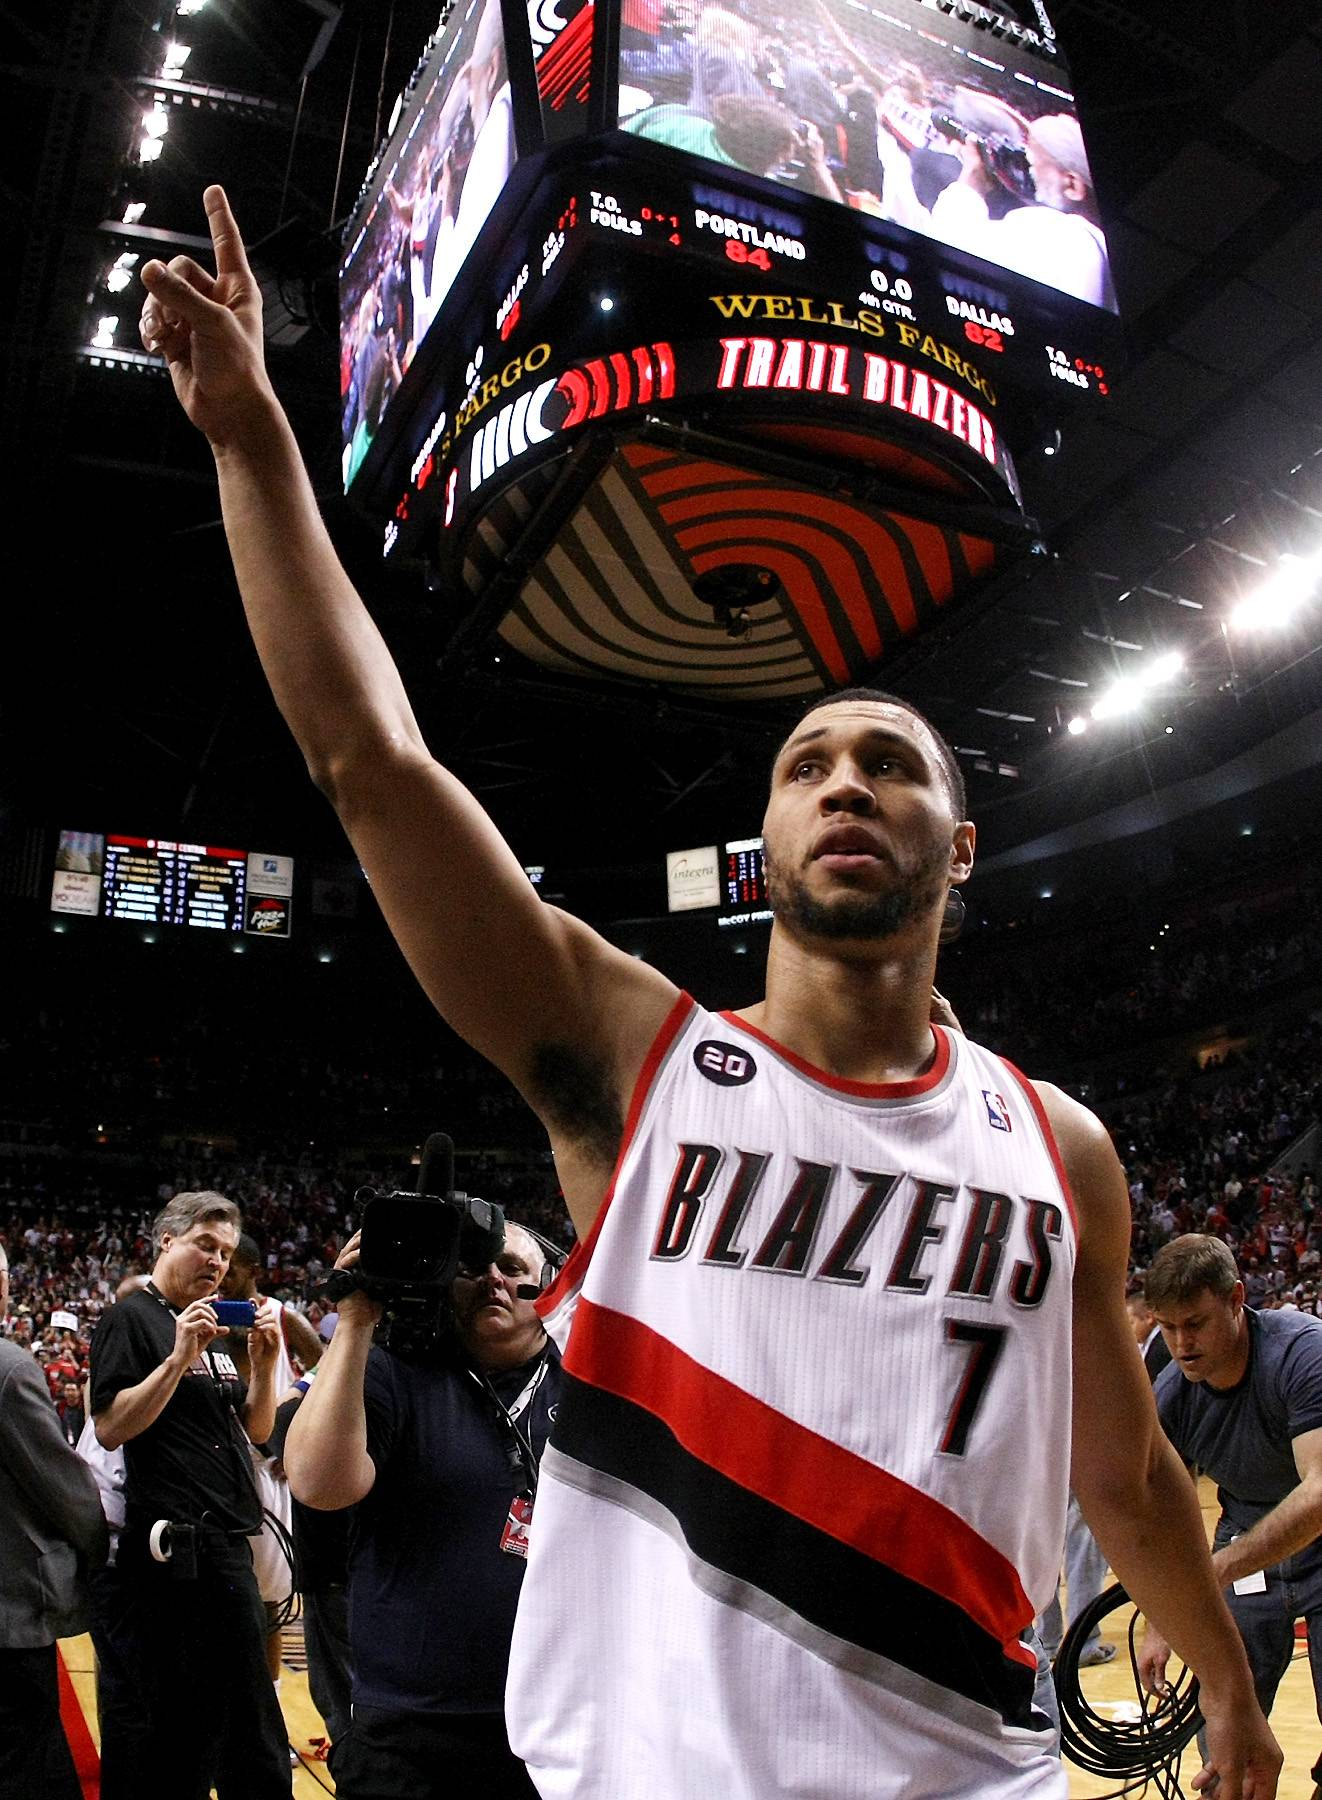 Brandon Roy - The 2006-2007 Rookie of the Year was Brandon Roy. He was raised in Seattle and went to the University of Washington before entering the draft. Since becoming a member of the NBA, he's definitely left his mark and has a bright future ahead of him.(Photo: Jonathan Ferrey/Getty Images)